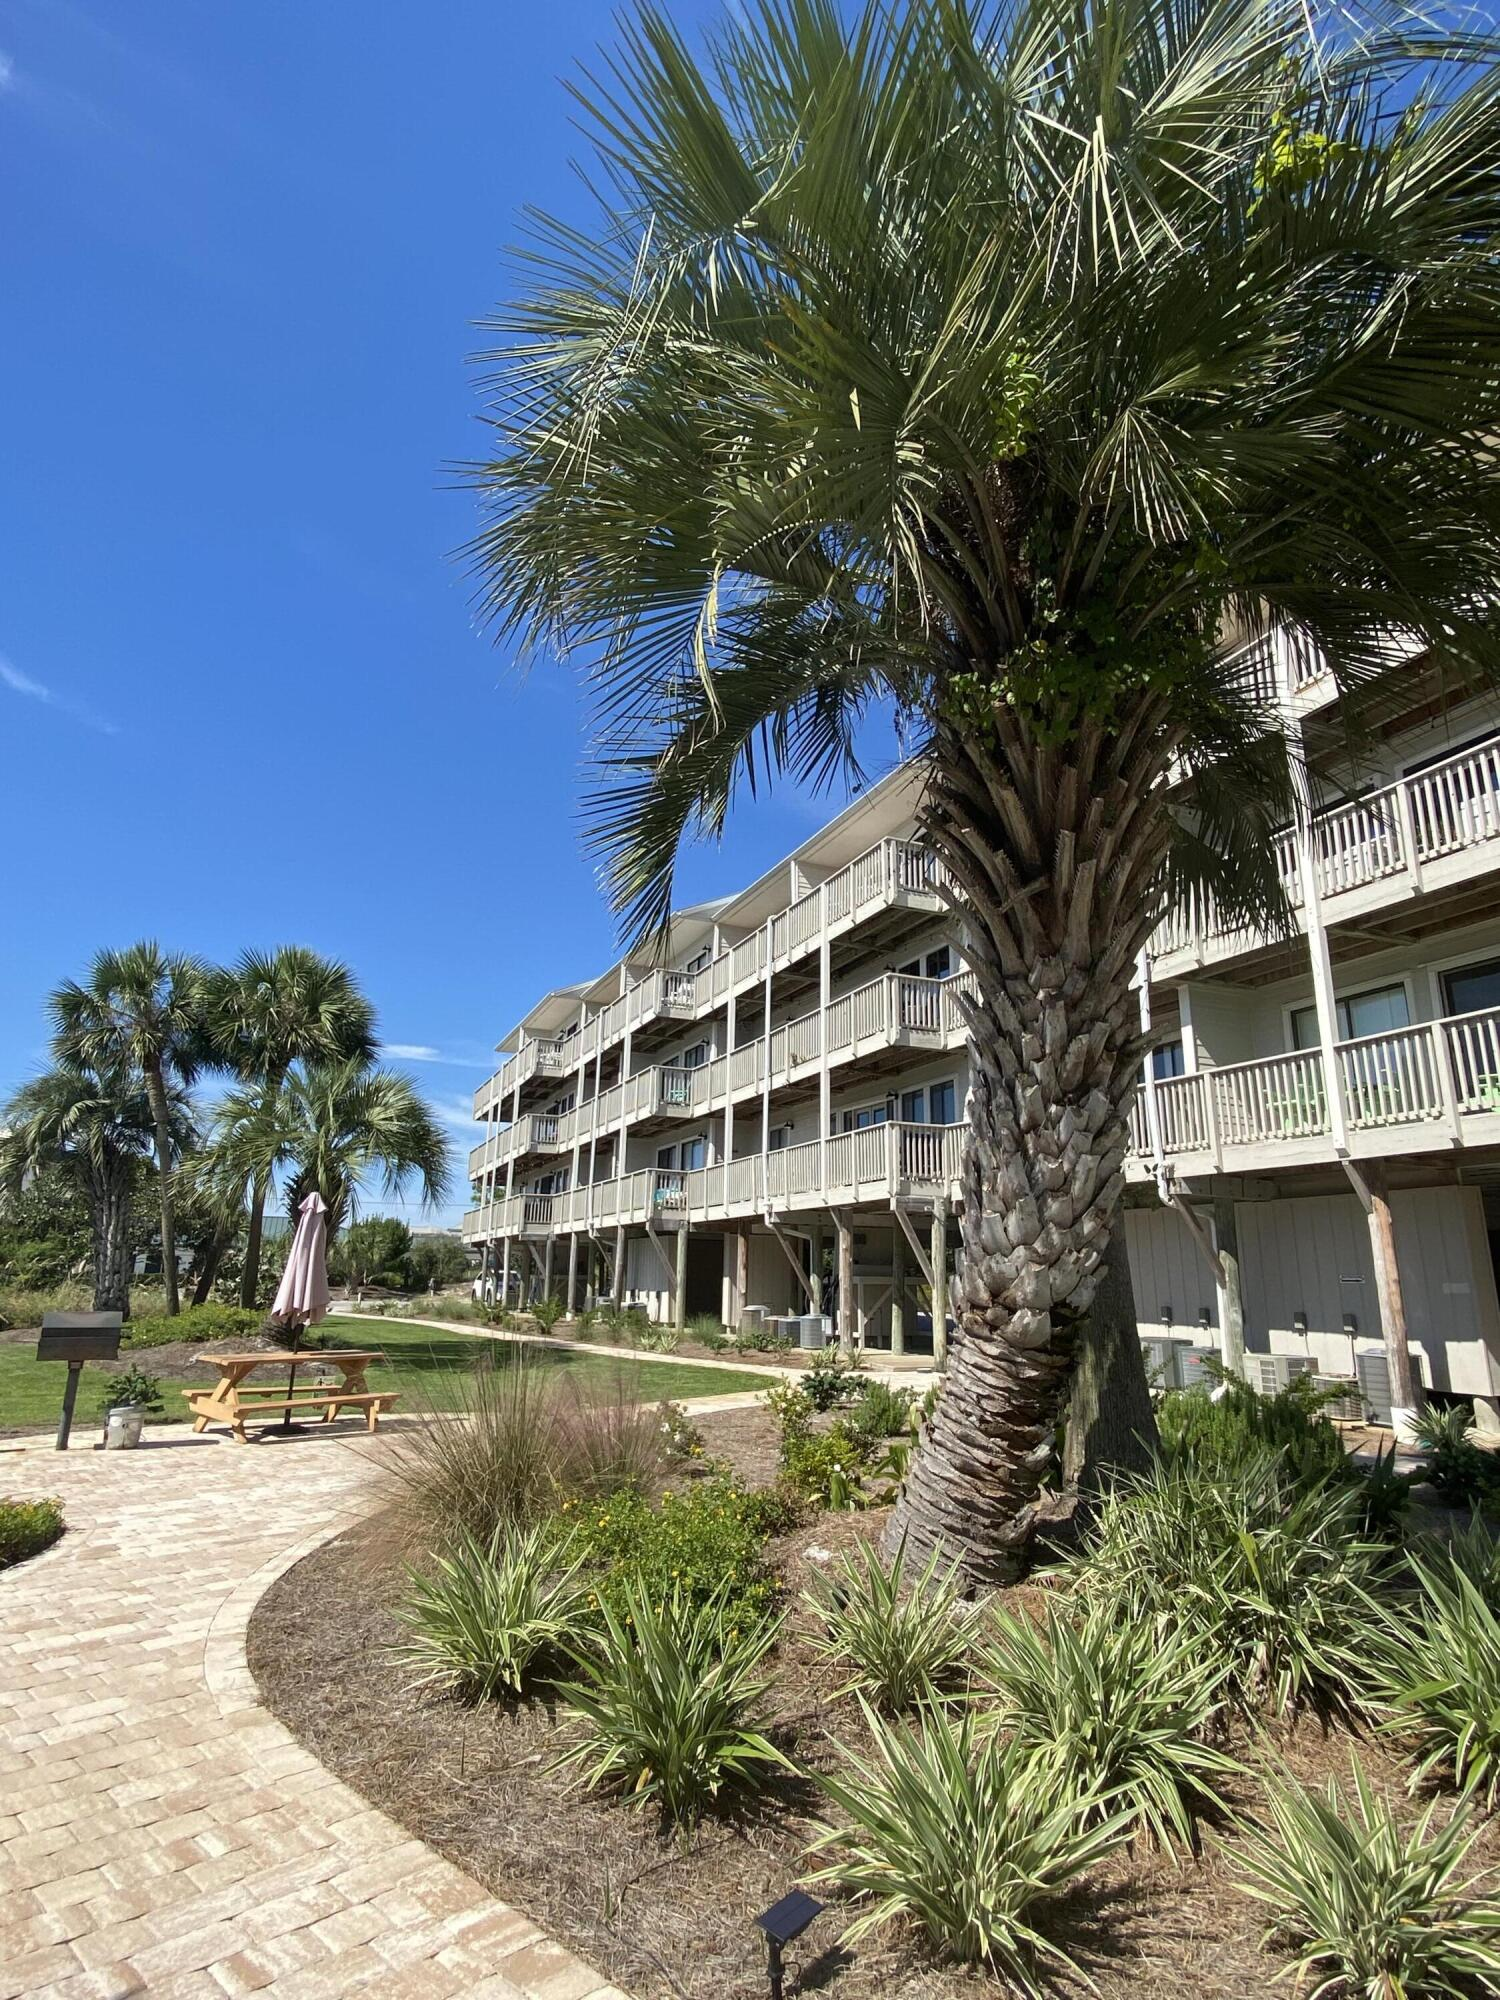 SOUTH OF 30A in Seagrove and JUST STEPS TO THE BEACH!  This cheerfully decorated studio condo sleeps 4 is fully furnished and ready to enjoy!  Private balcony looks out over Deer Lake bordering this community to one side while also overlooking the pool and beautiful emerald water just beyond!  Beachfront II is beautifully landscaped and has so much to offer including oversized heated pool and whirlpool area, covered deck/gazebo, grilling area, elevator, and covered parking.  They have recently completed a huge renovation to include new pool decking, new whirlpool, new metal roof, new hardy board siding and paint, new fire and safety equipment, new exterior lighting, and more!  This condo has not been on a rental program and has been meticulously maintained.  Must see!